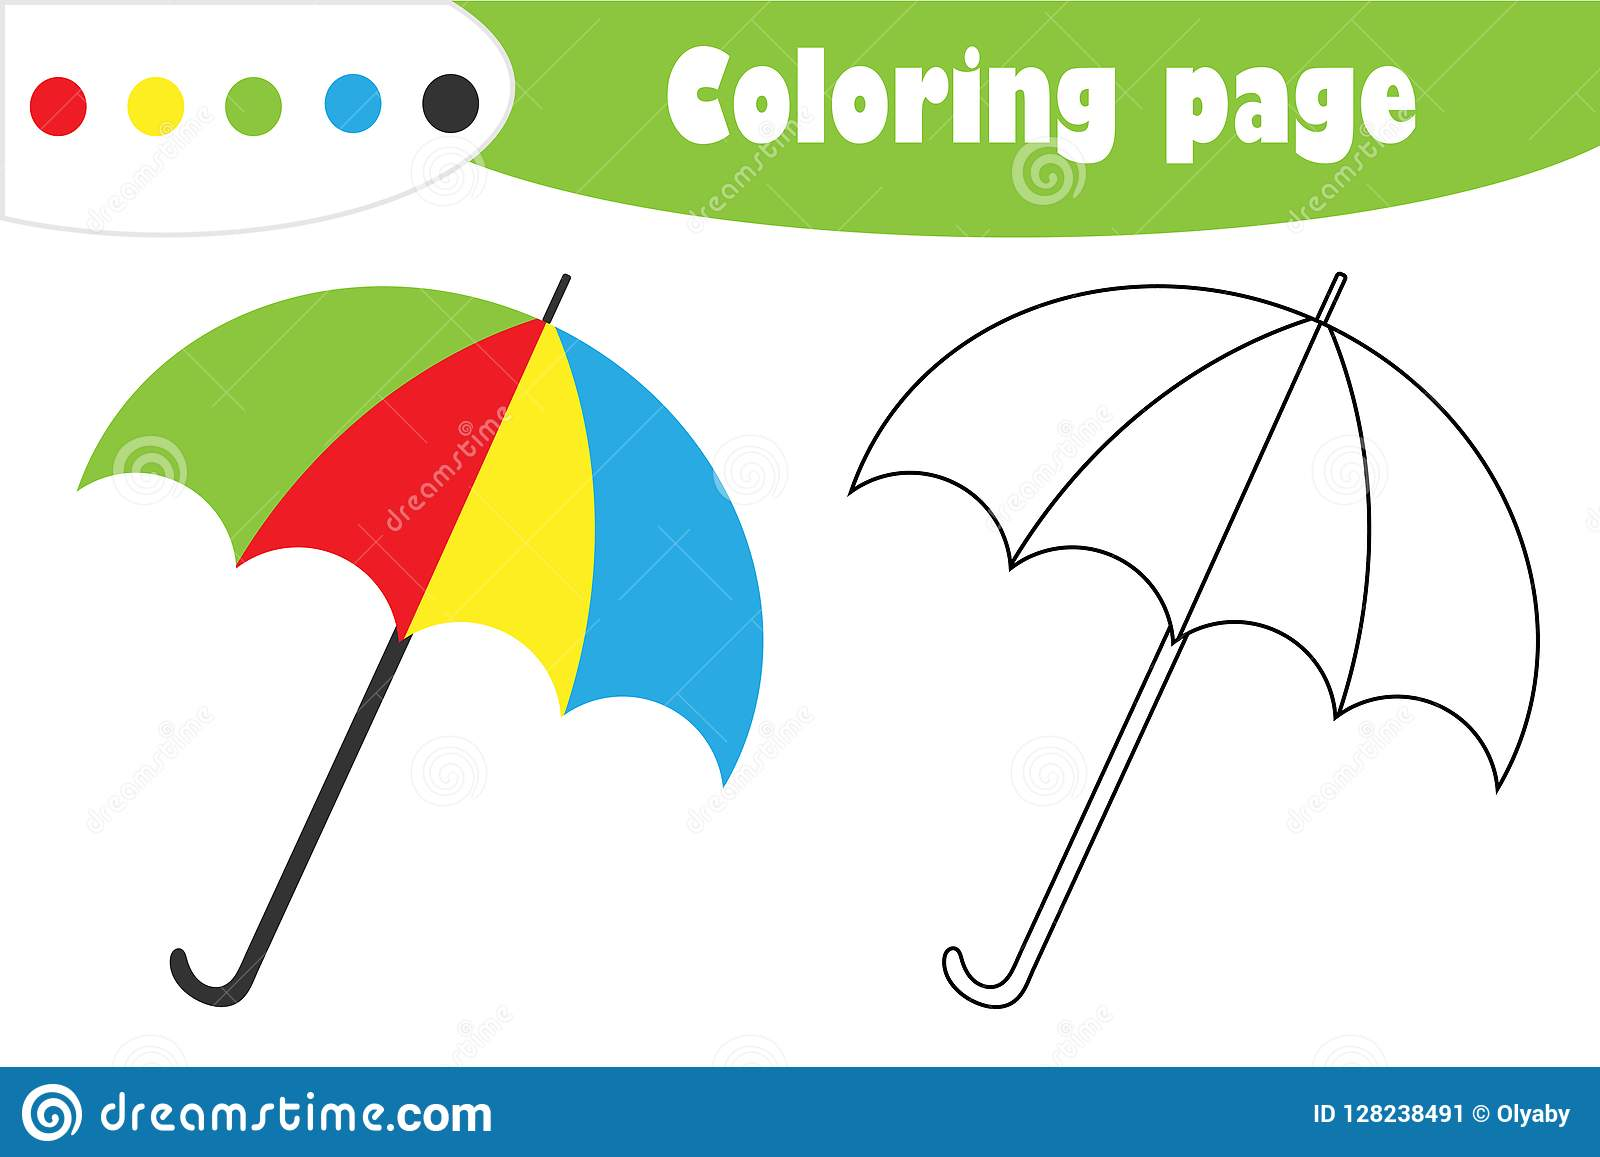 Umbrella In Cartoon Style Autumn Coloring Page Education